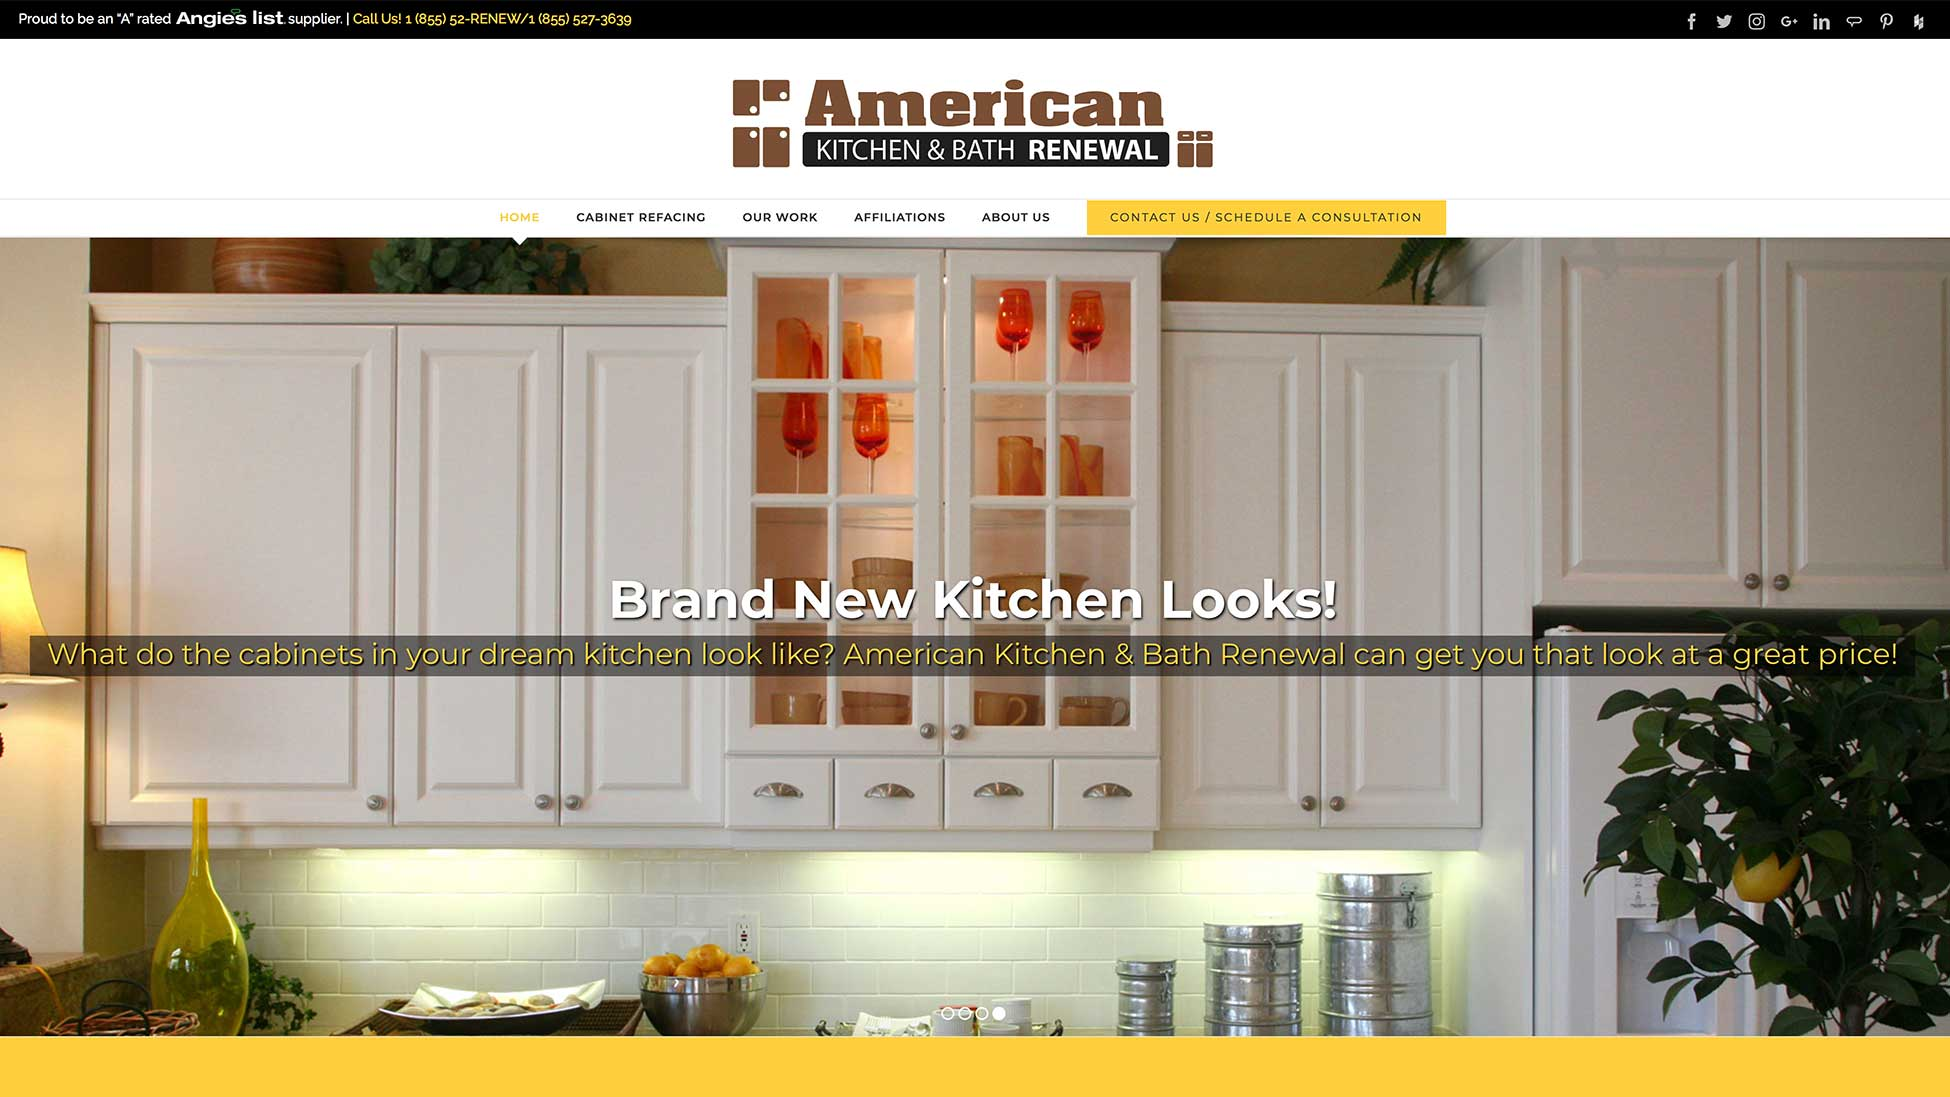 Image of American Kitchen and Bath Renewal website homepage.